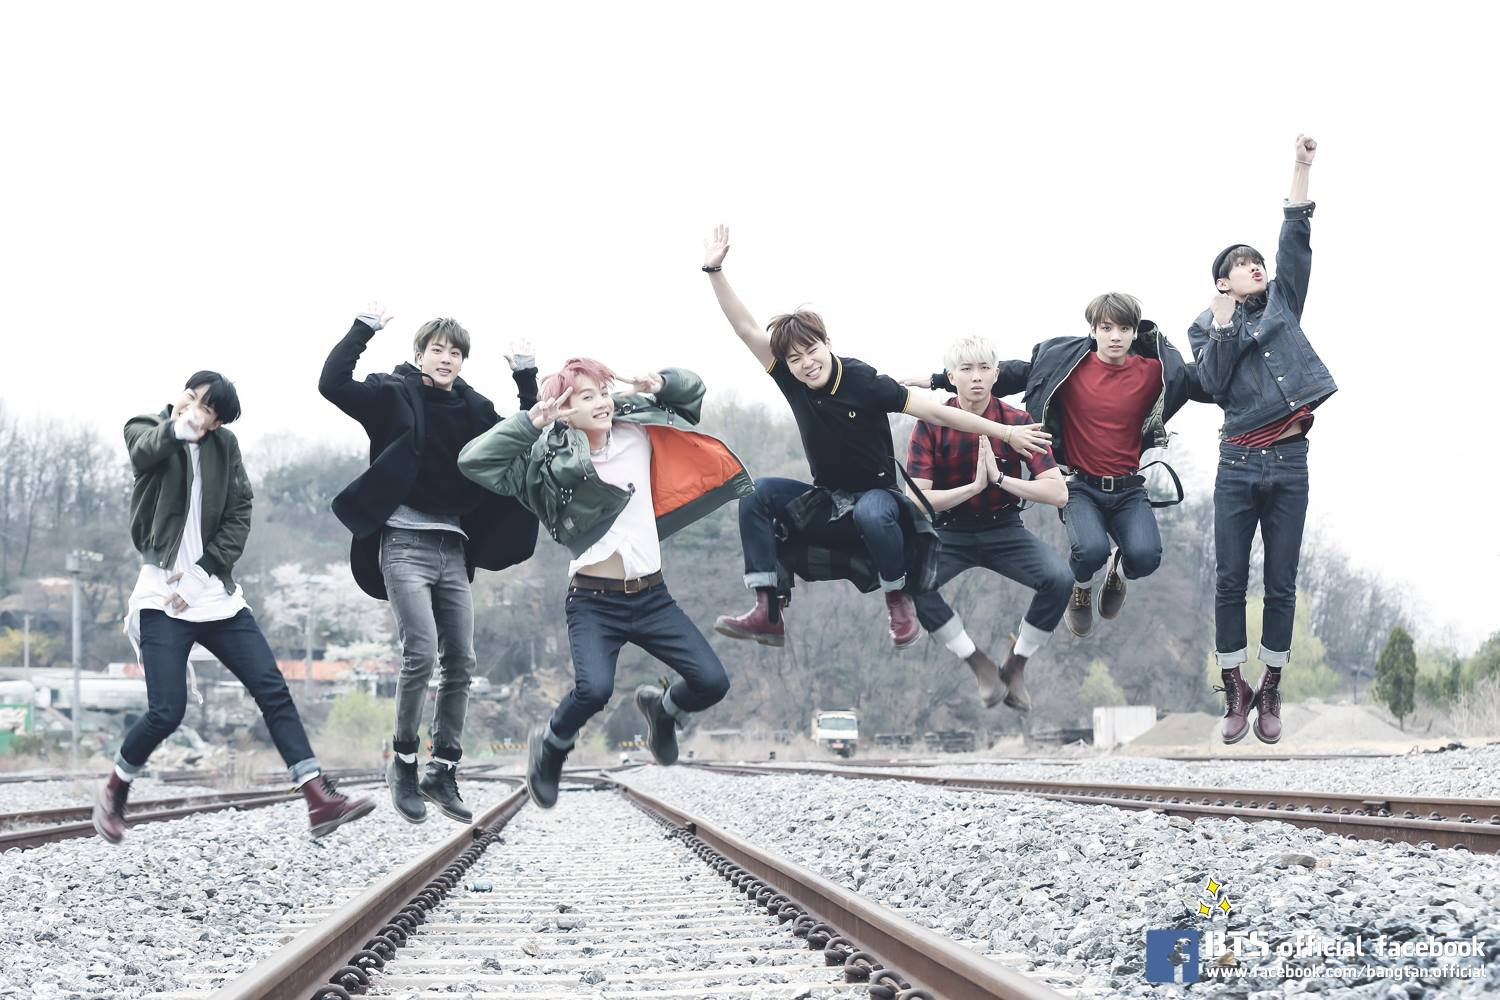 Joining the ARMY: My Experience Entering the BTS Fandom